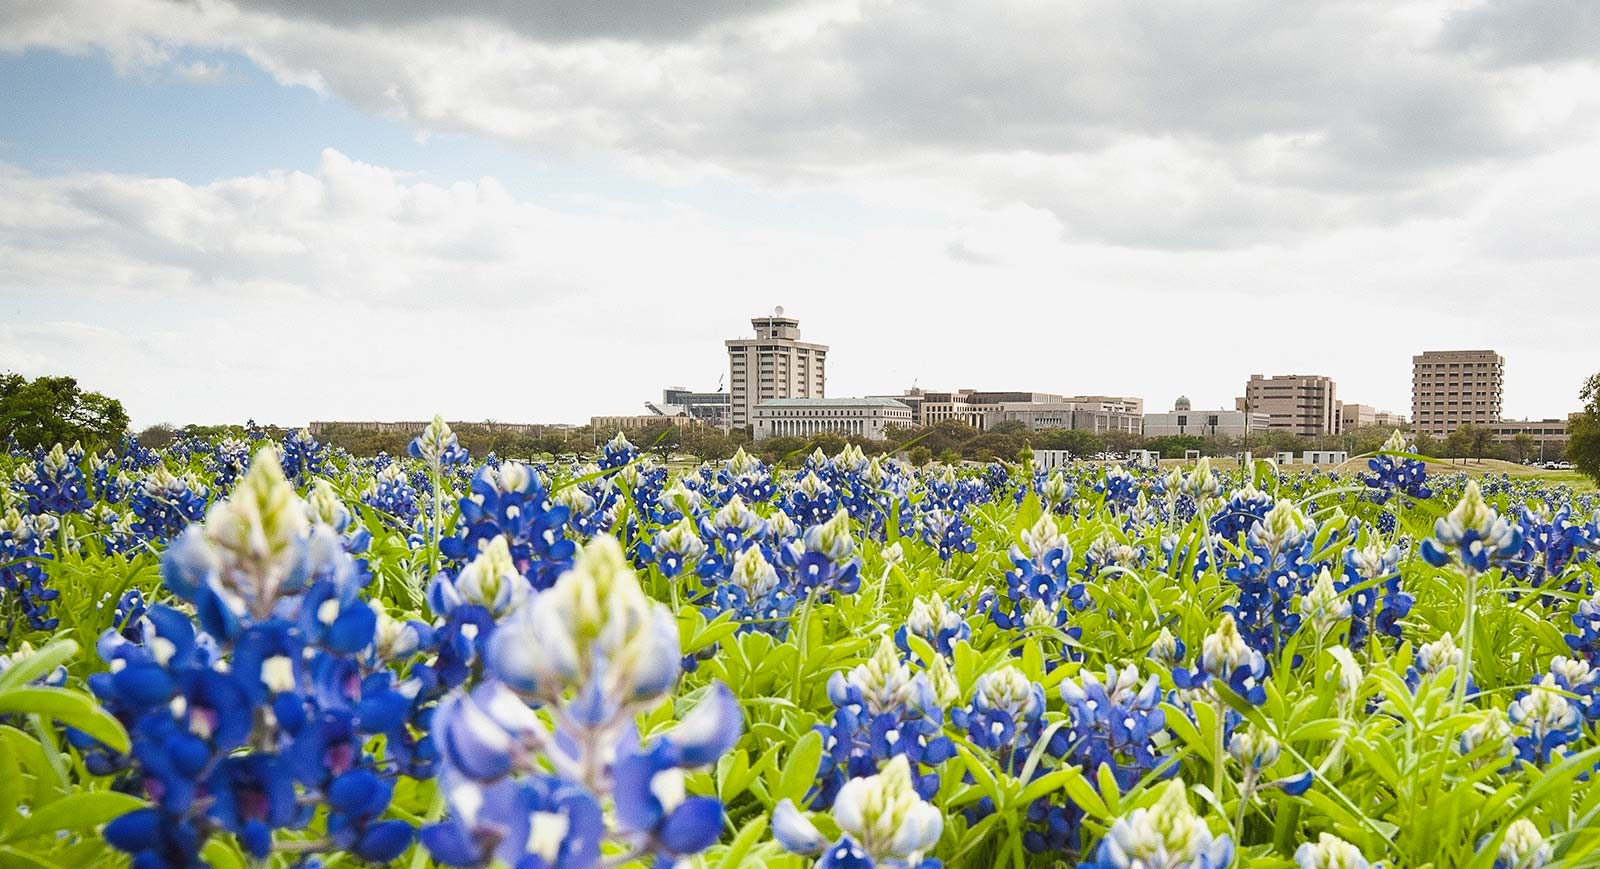 Bluebonnets near the front entrance of Texas A&M's campus